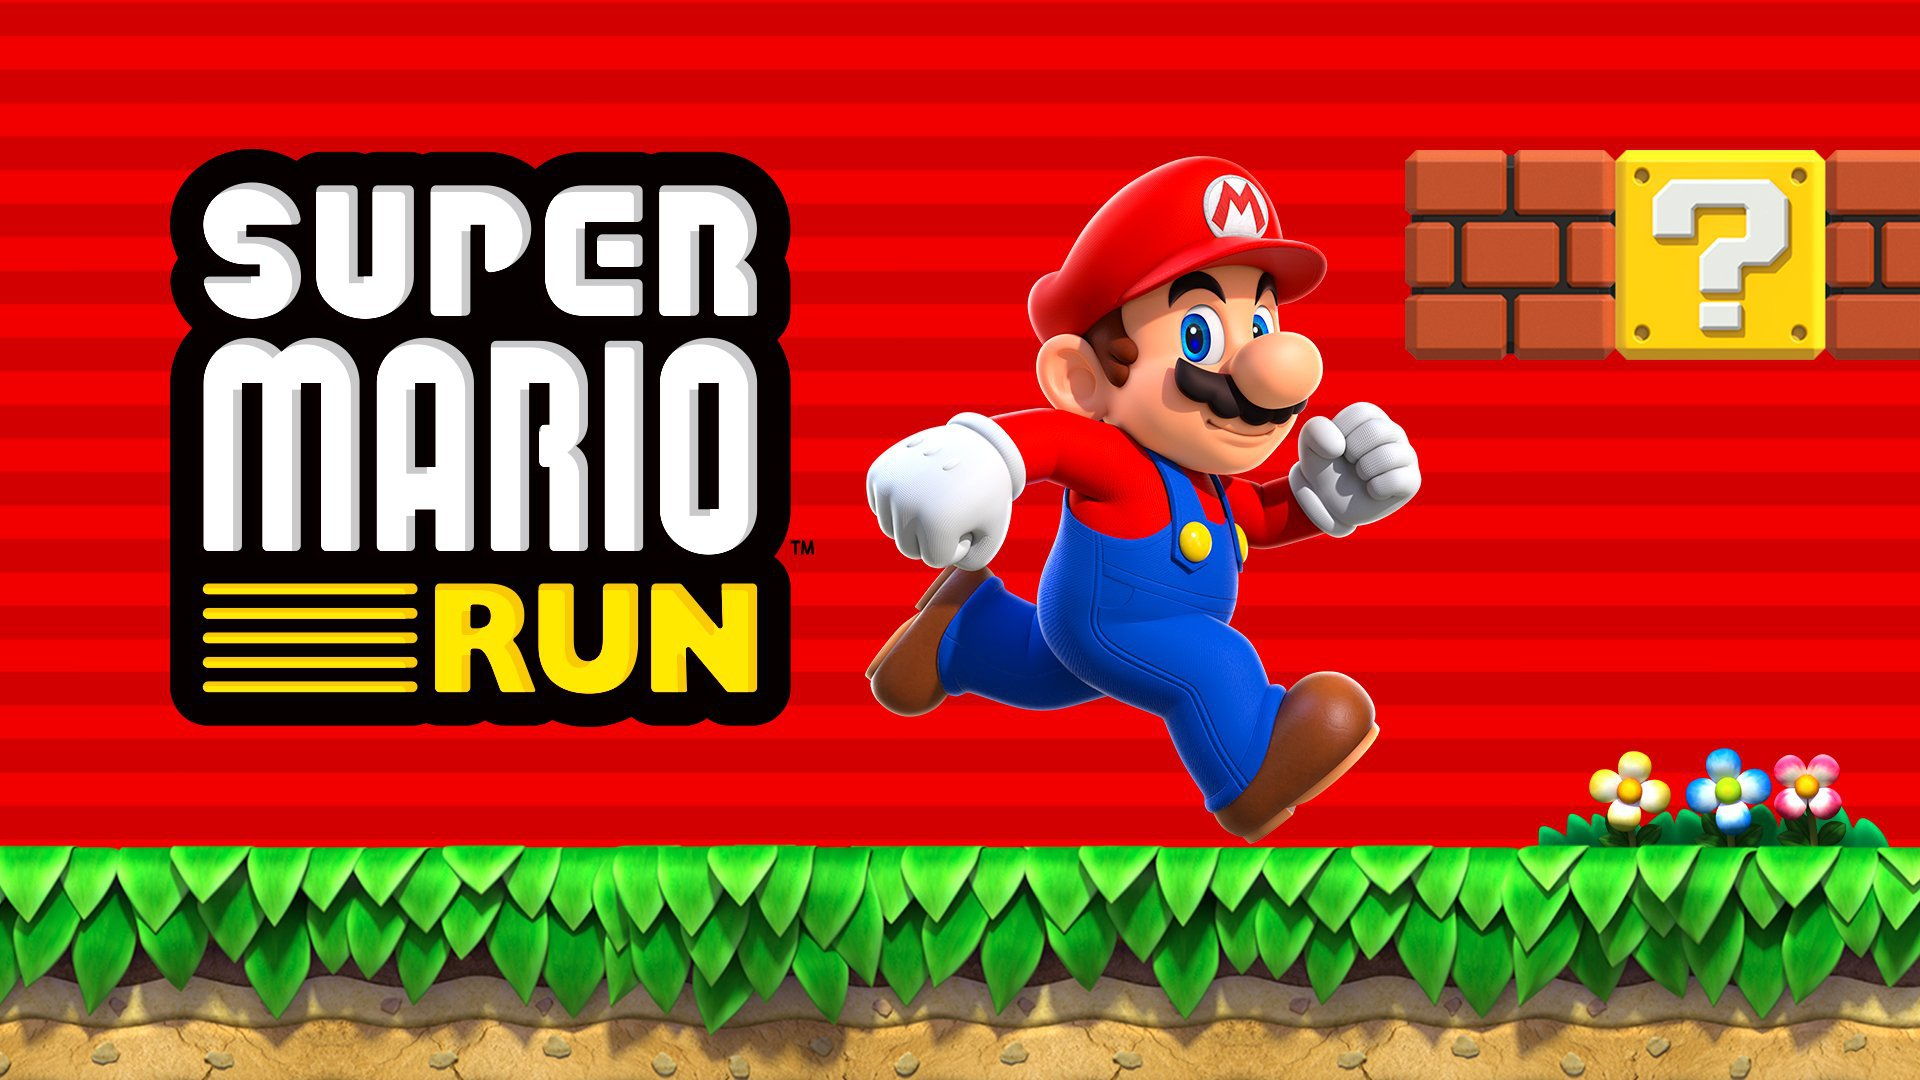 'Super Mario Run' Launches Loads Of Coins Event